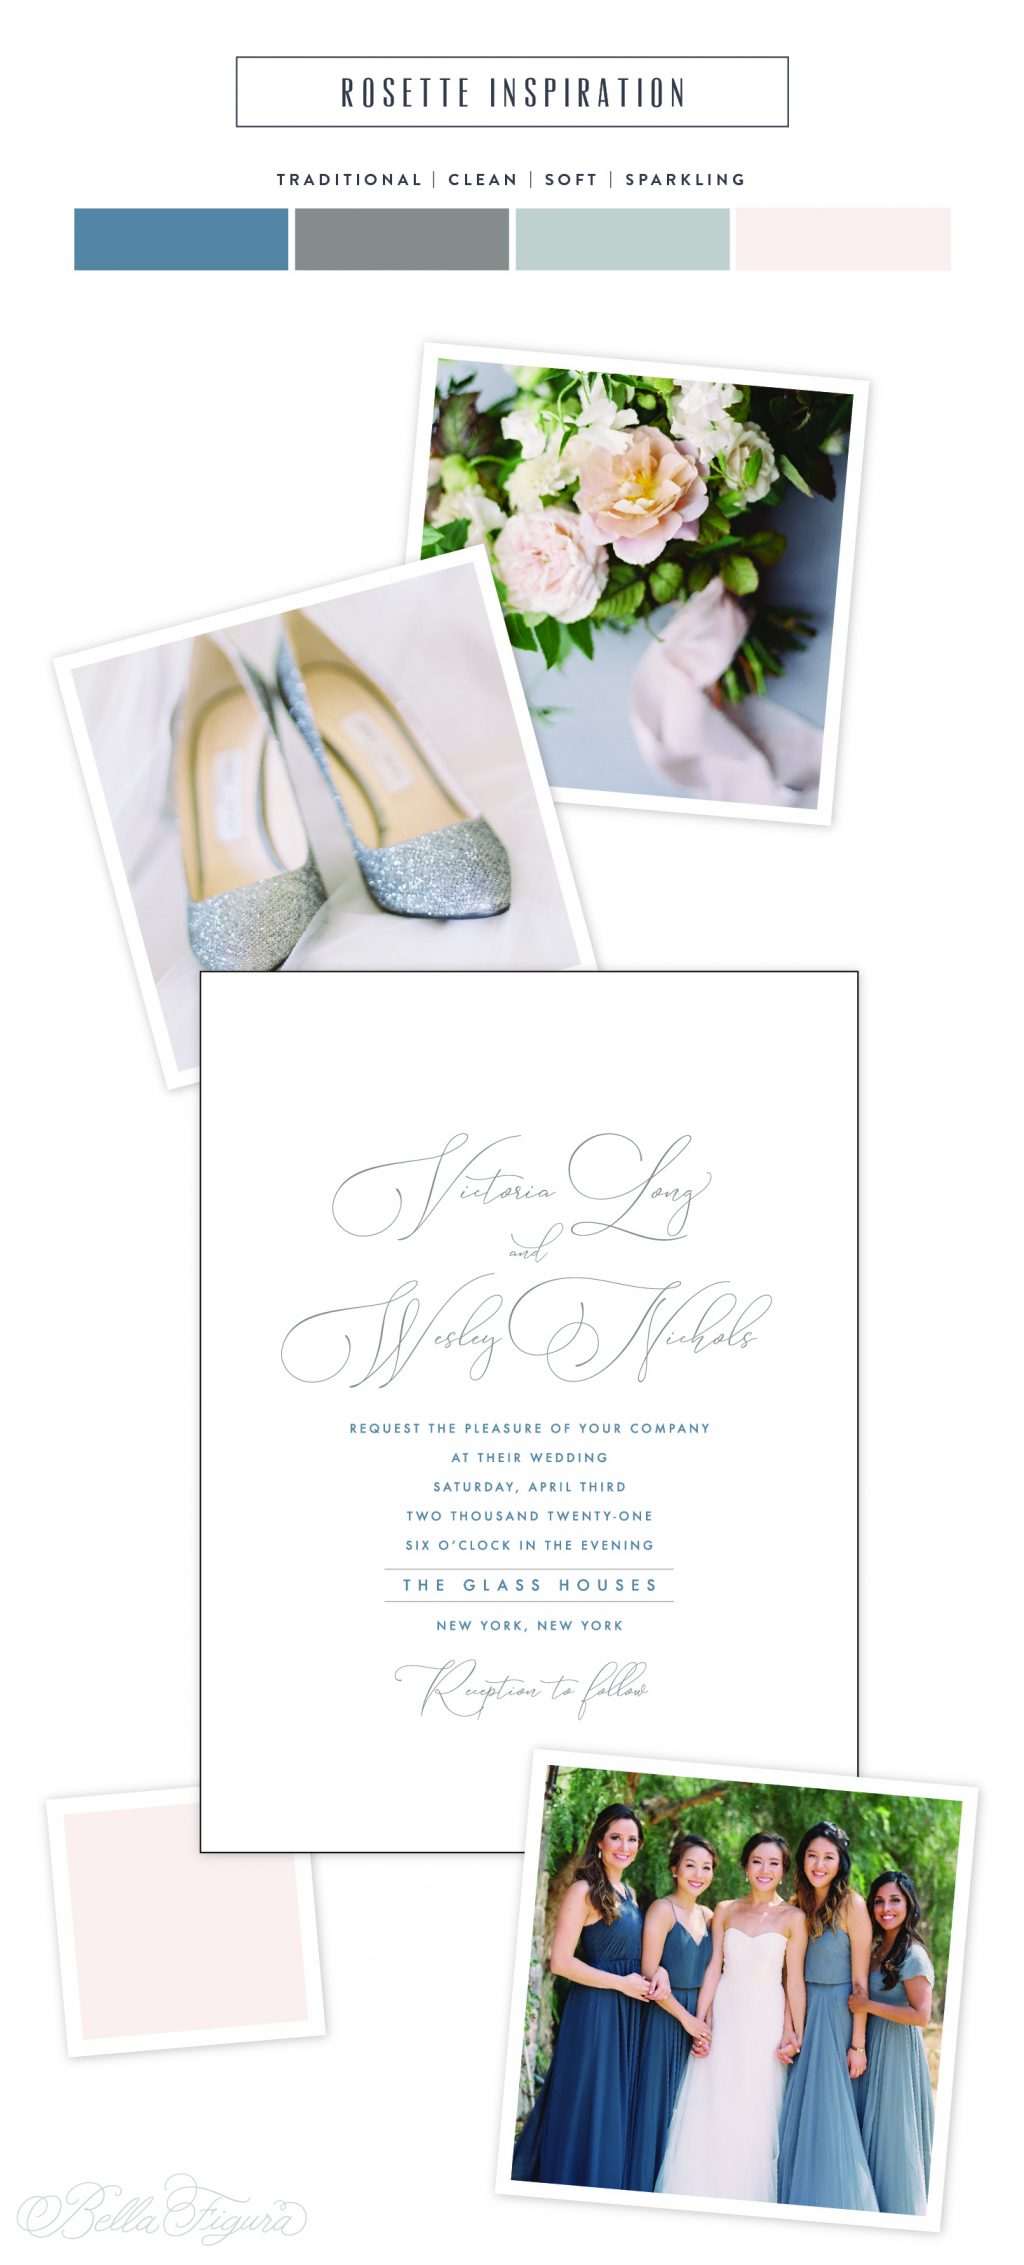 Rosette reimagined: soft + elegant classic wedding invitation inspiration by Bella Figura